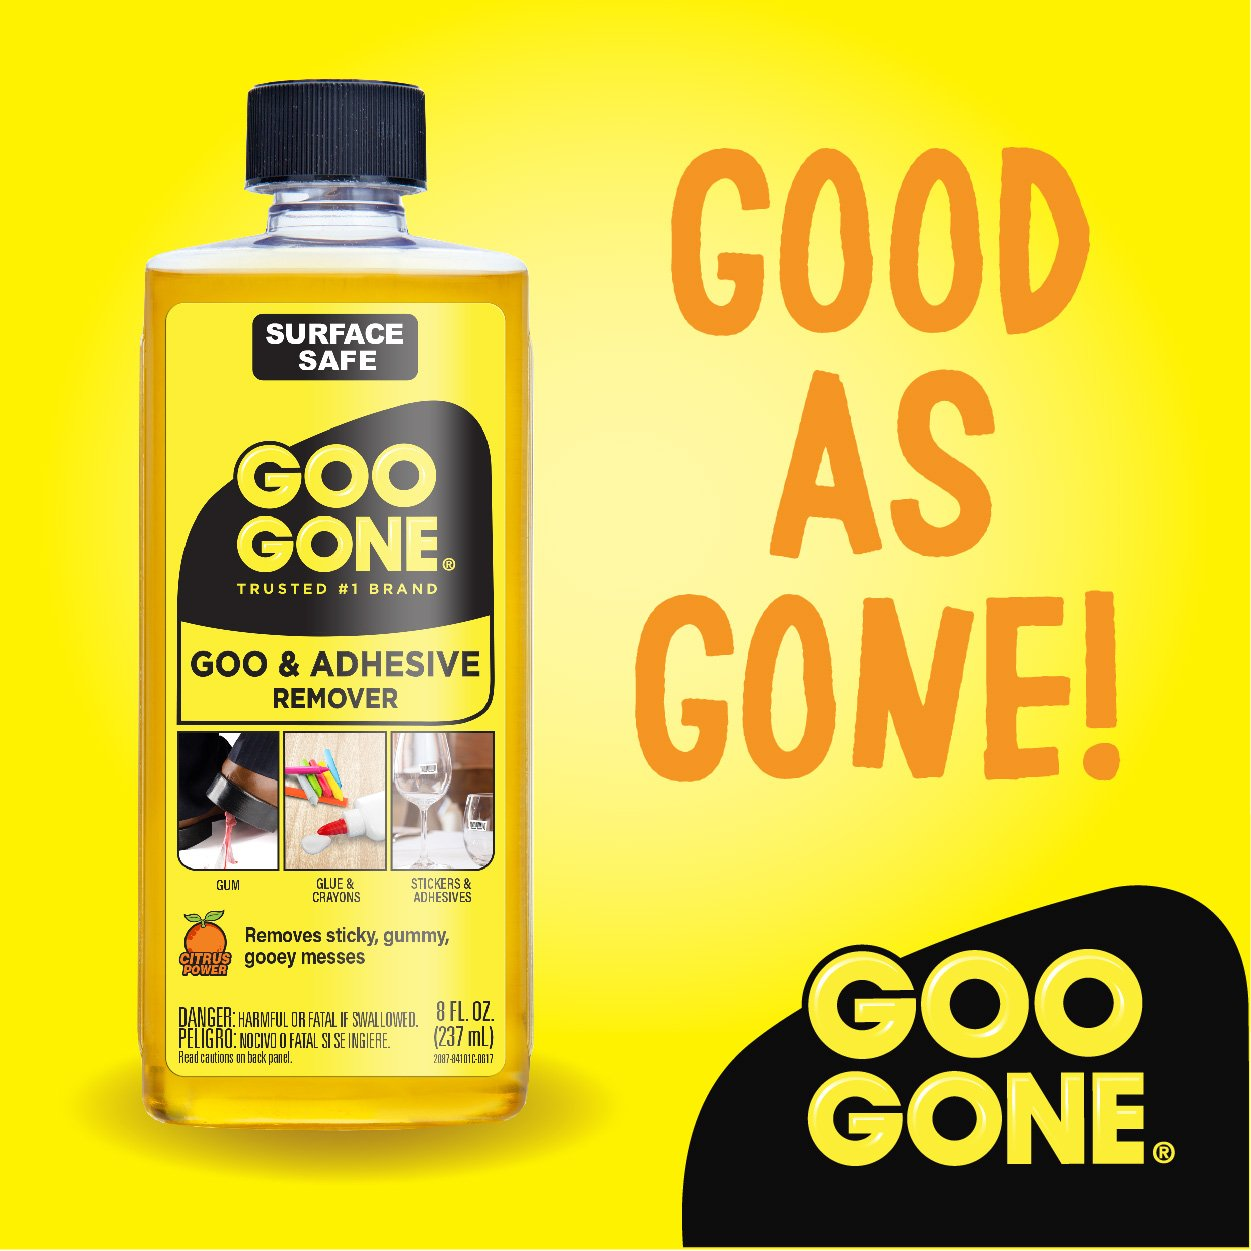 Amazon.com: Goo Gone Original Liquid - Surface Safe Adhesive Remover –  Safely removes Stickers, Labels, Decals, Residue, Tape, Chewing Gum,  Grease, ...